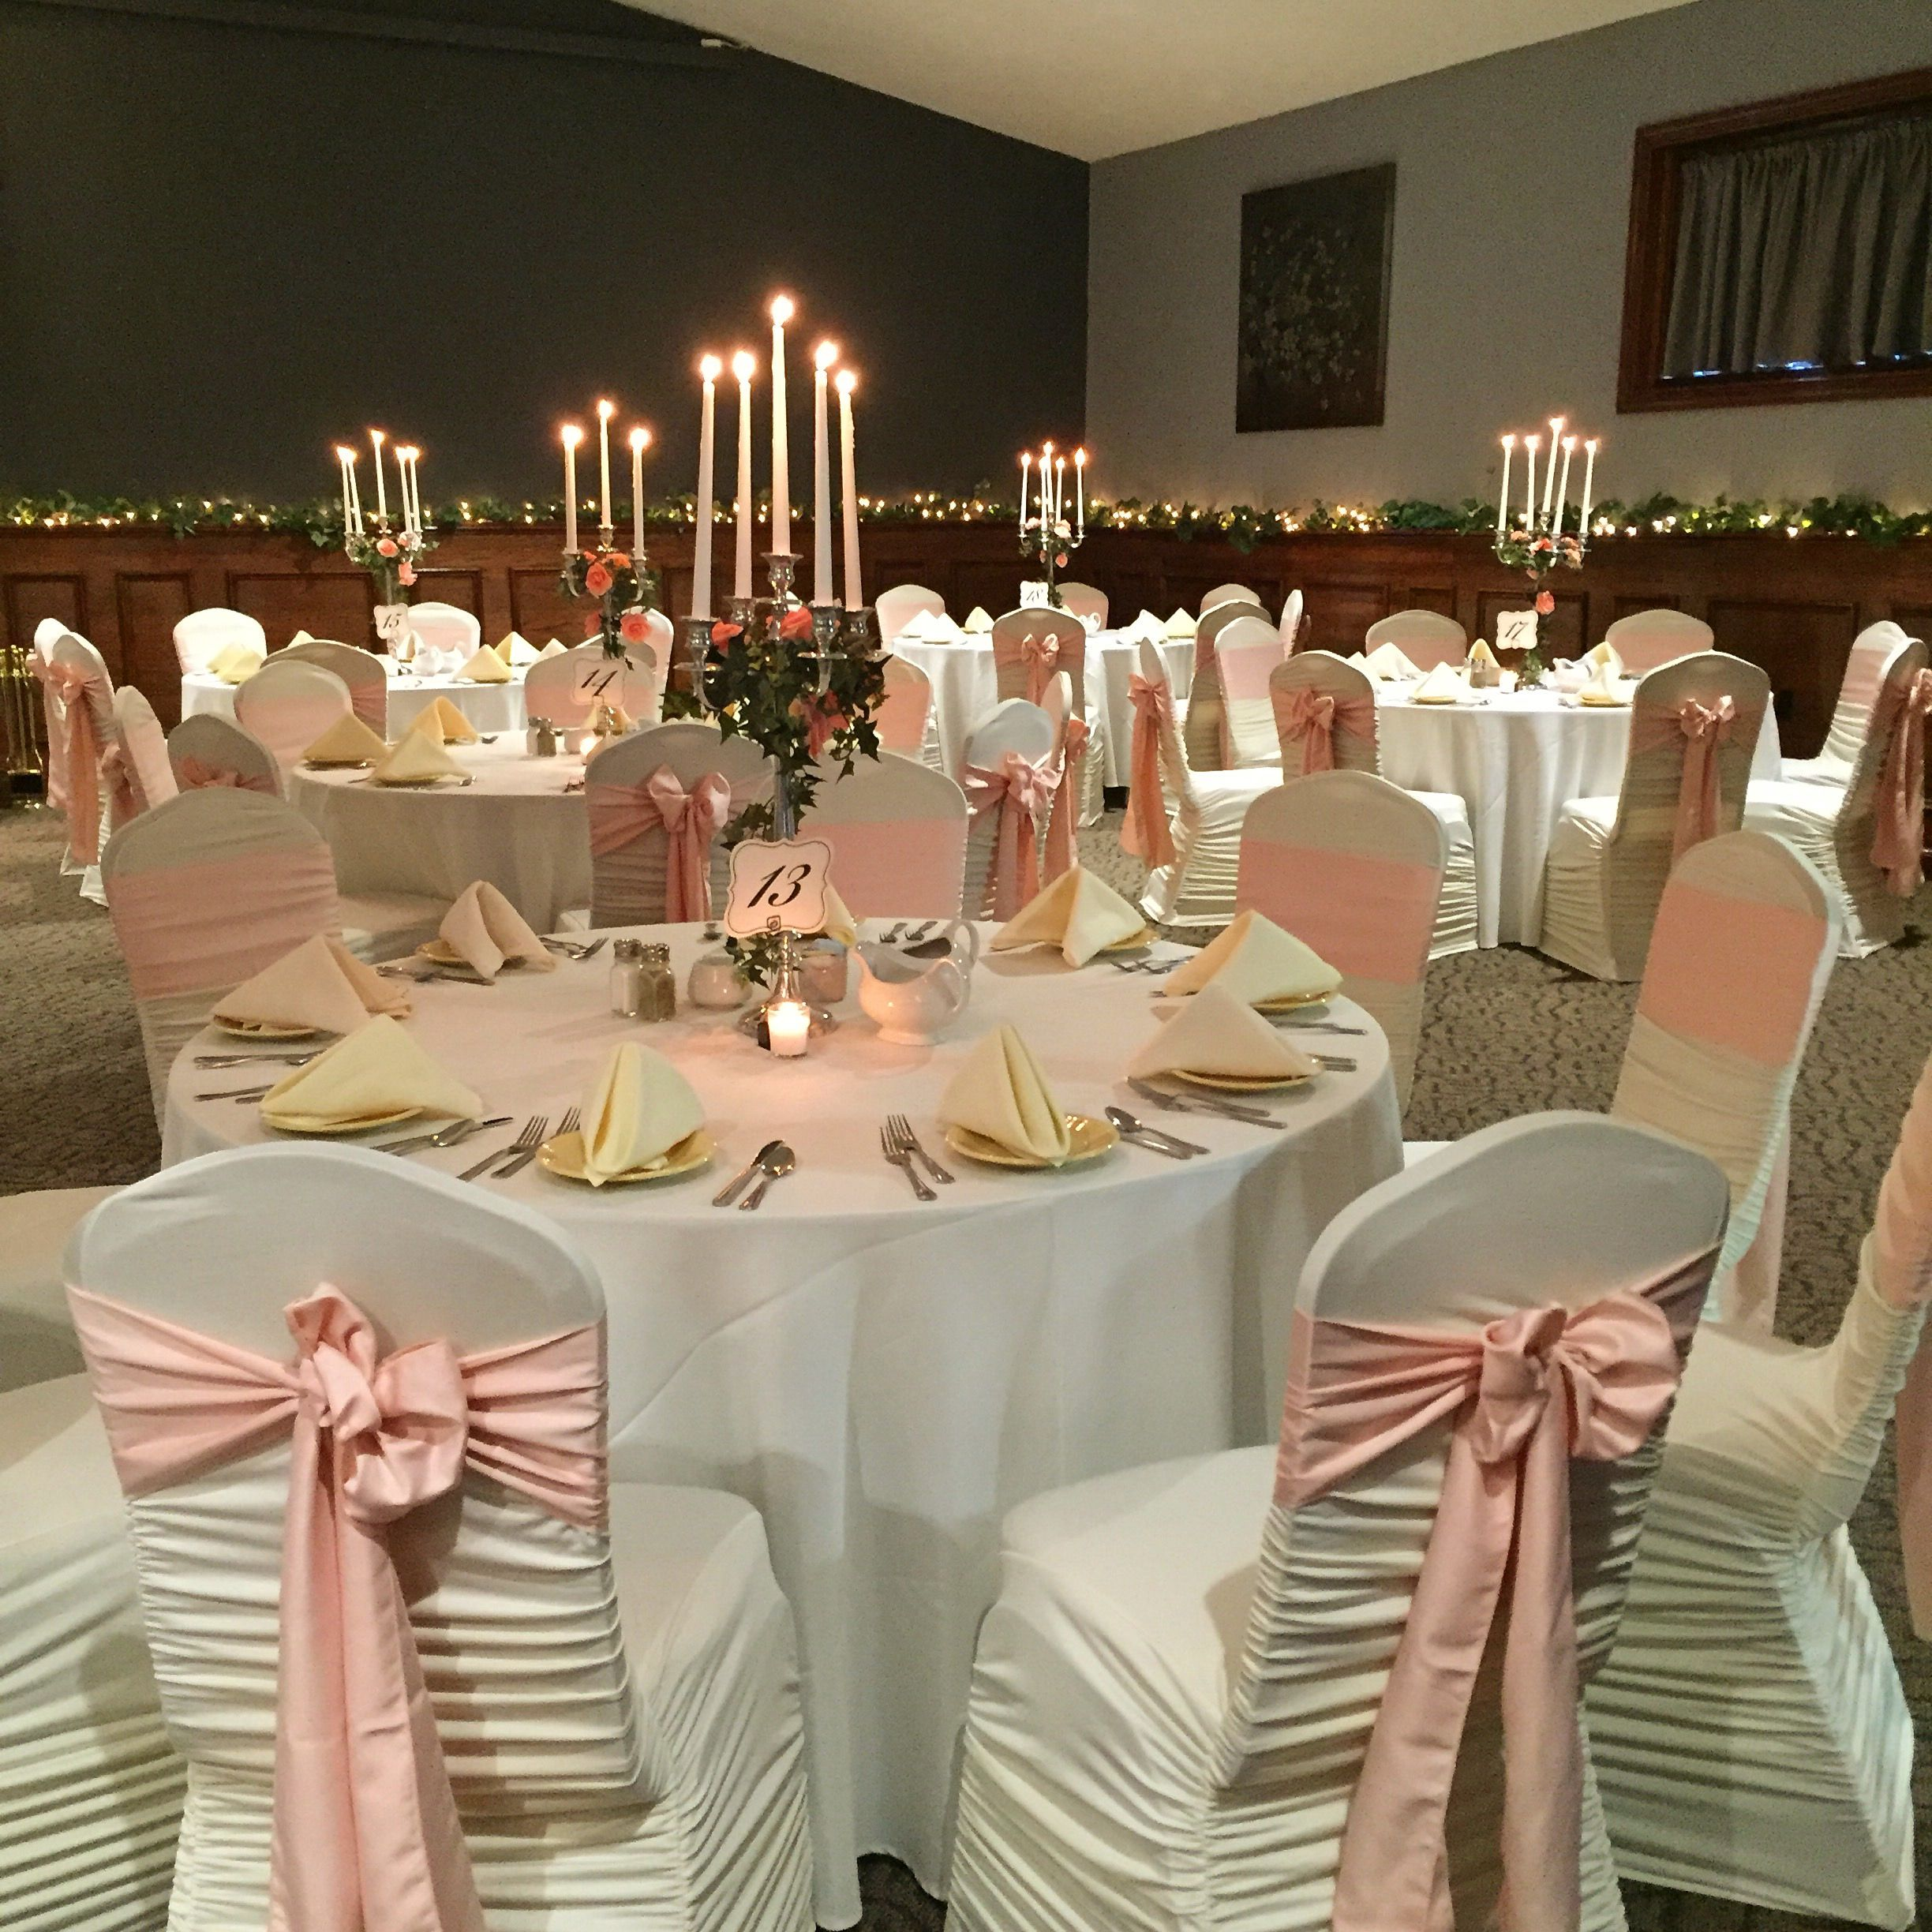 Table Set For Weir Massie Wedding Ceremony & Reception In